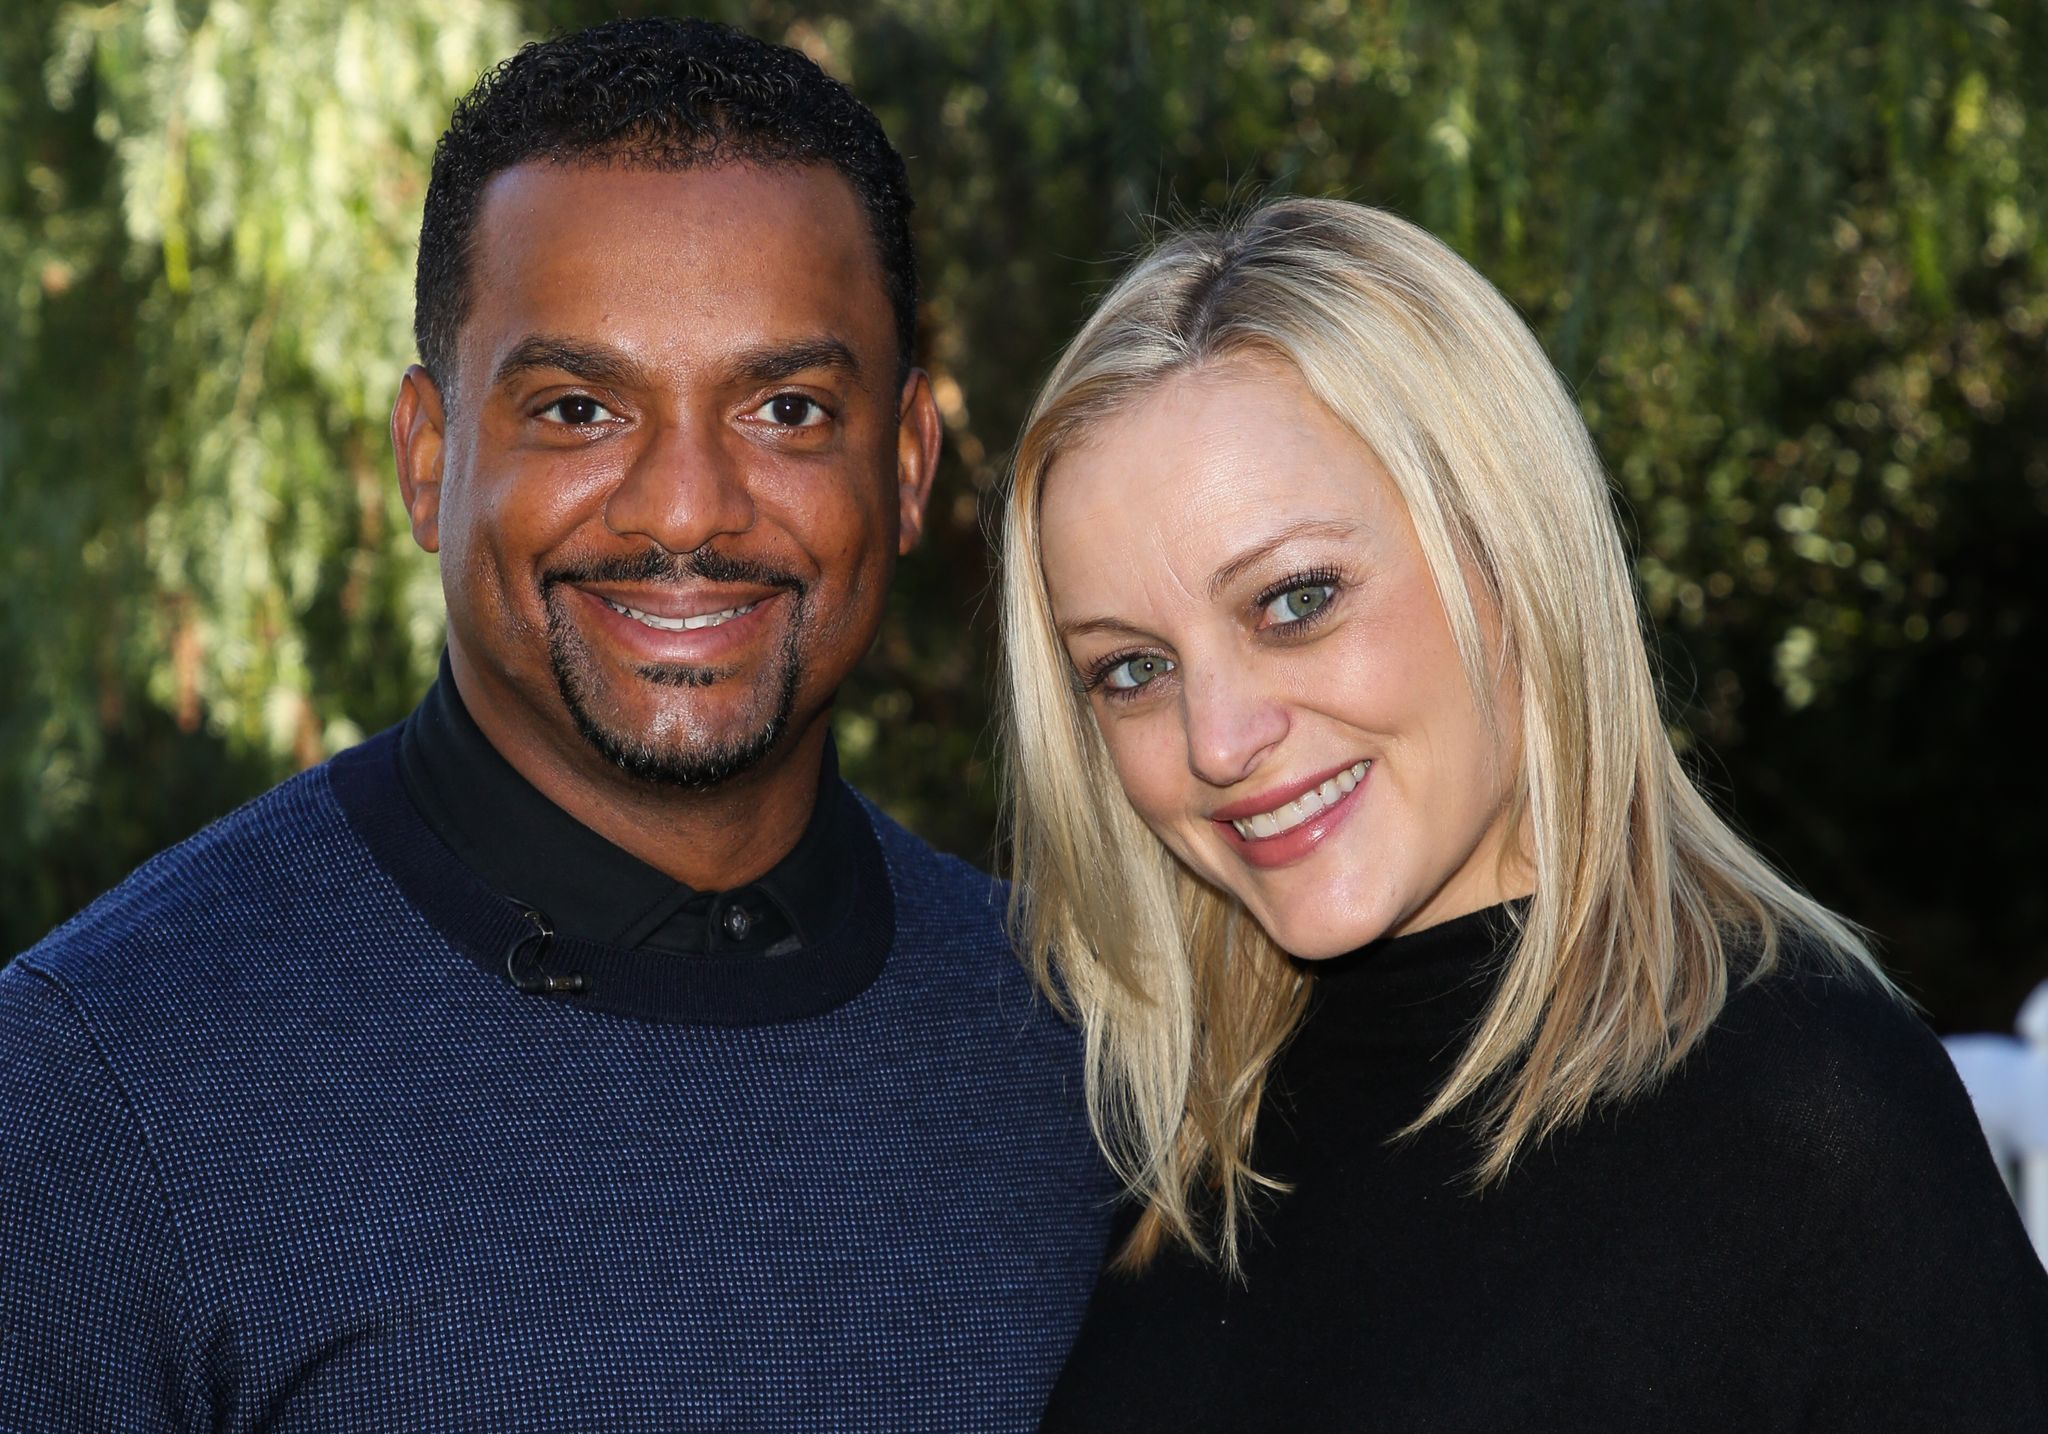 """Alfonso Ribeiro and his wife Angela Unkrich Ribeiro at Hallmark's """"Home & Family"""" on December 15, 2018 in Universal City, California 